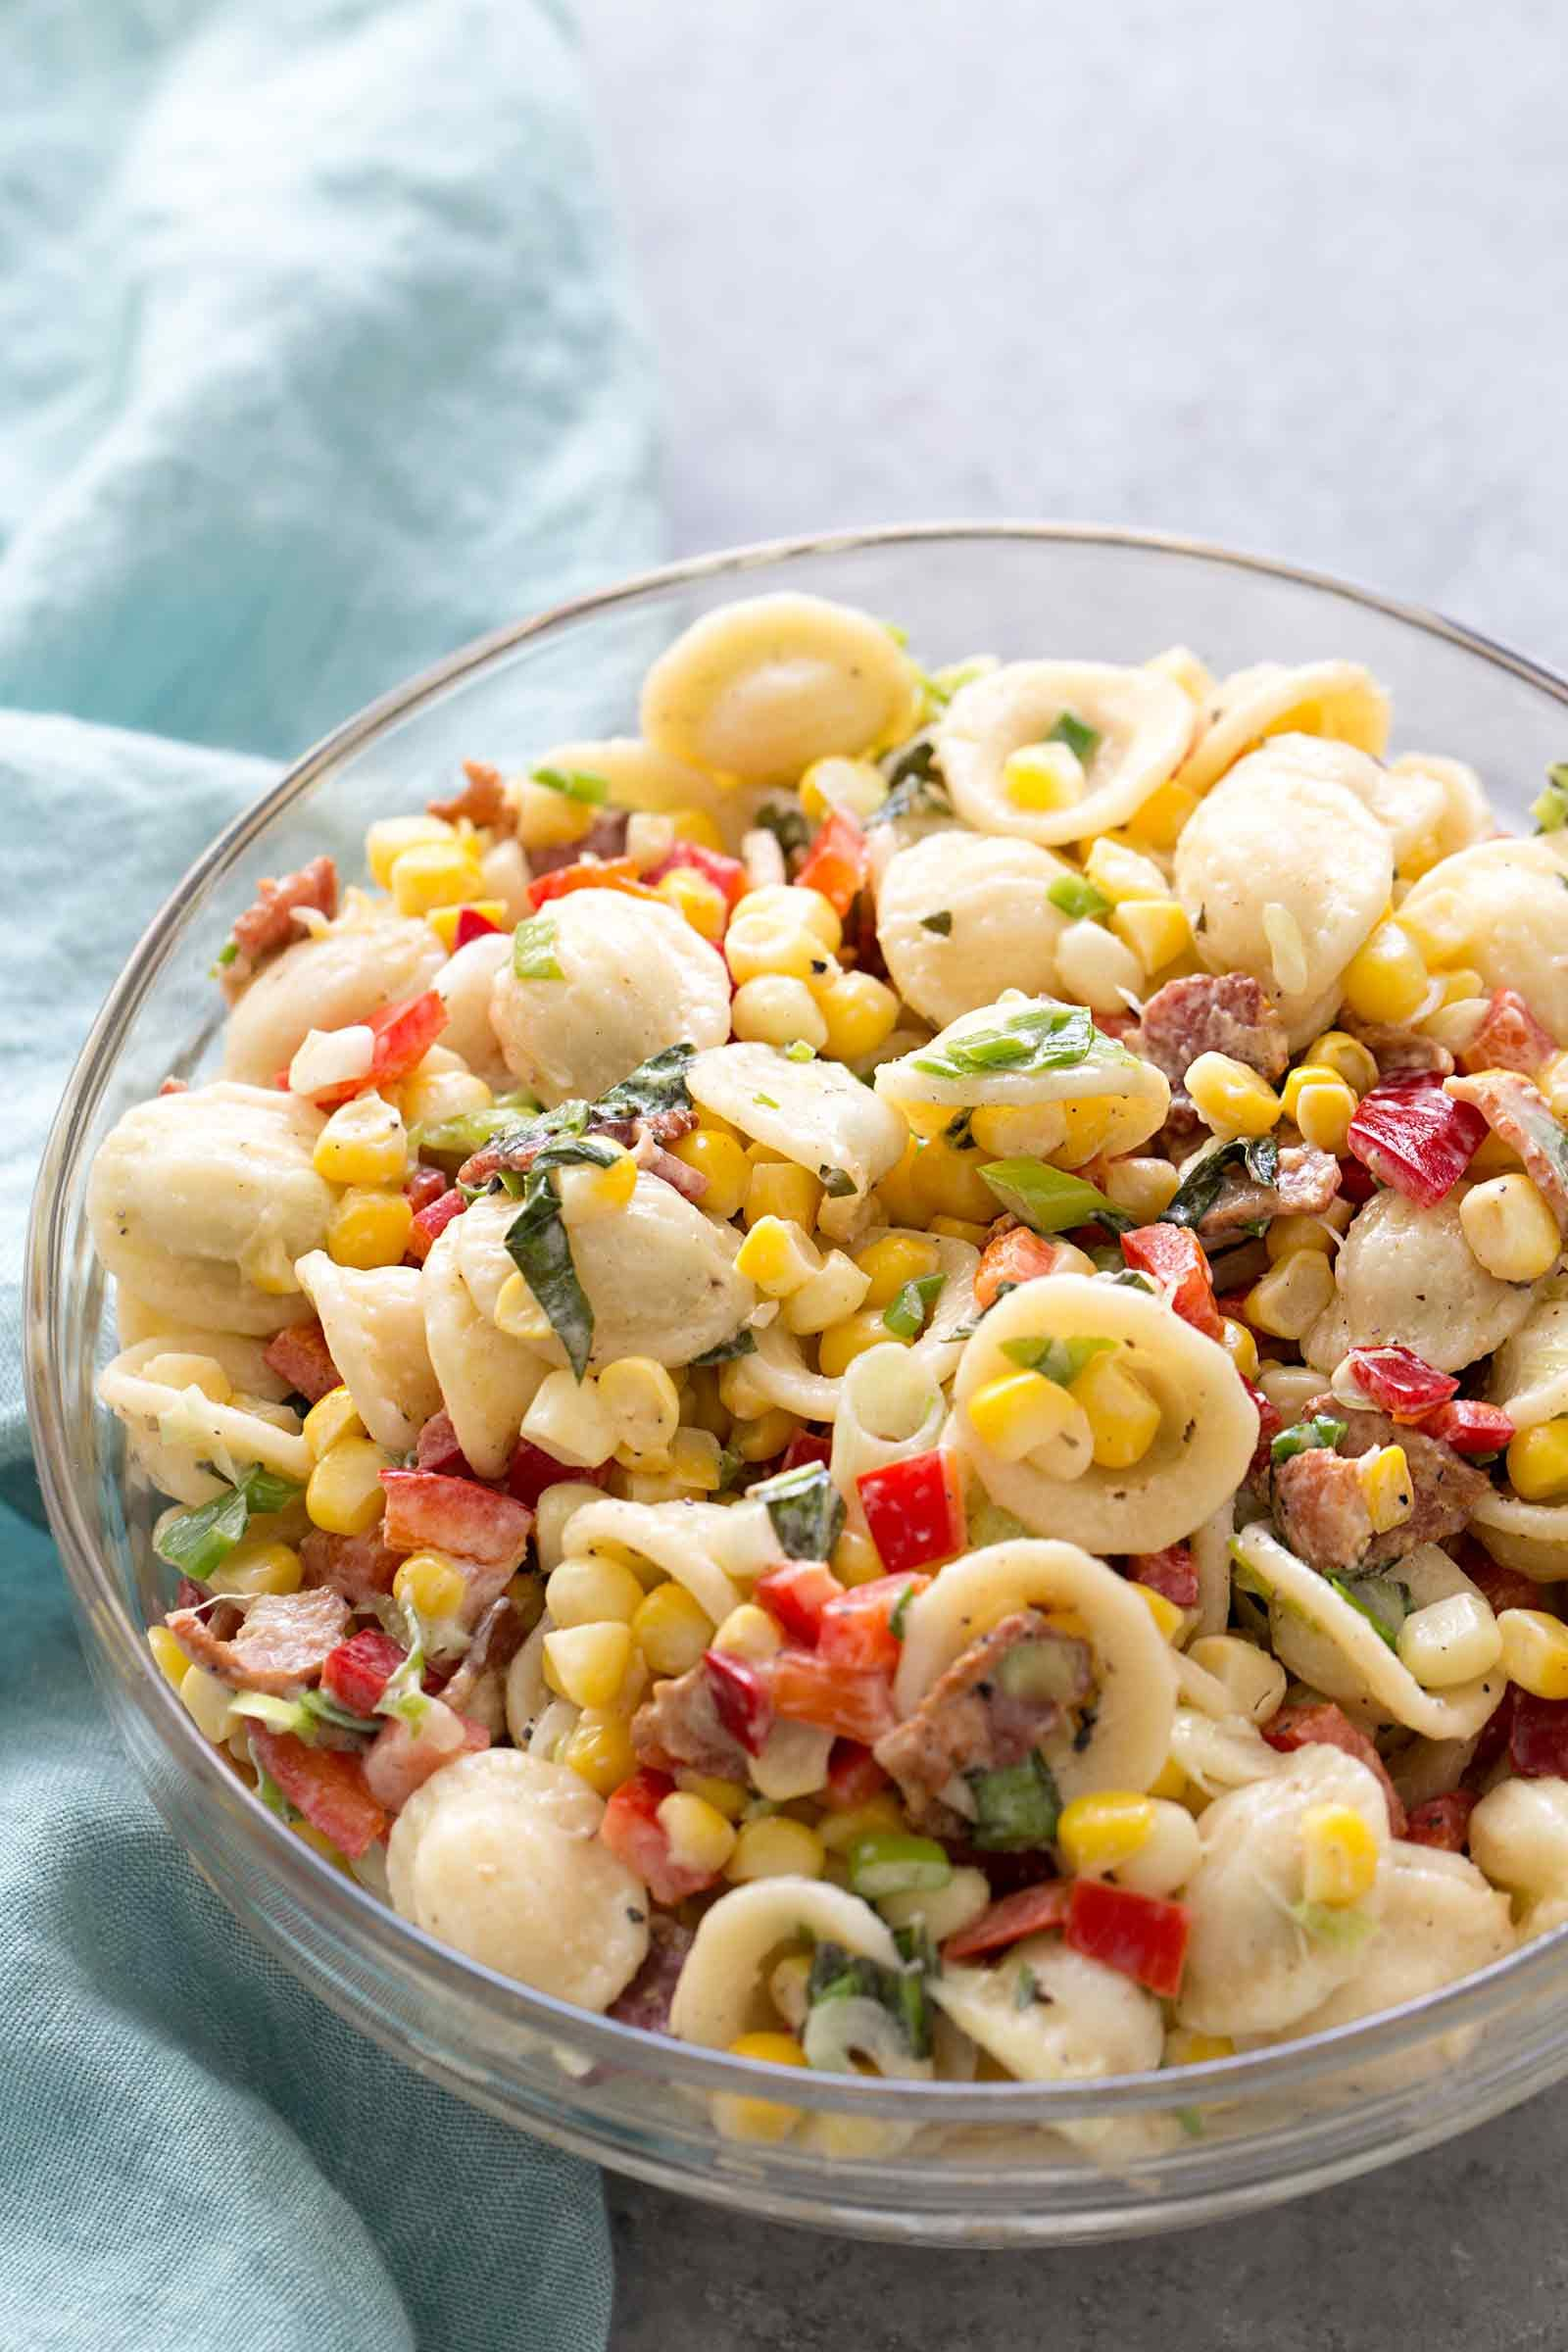 Pasta Salad With Corn Bacon And Buttermilk Ranch Dressing Recipe Easy Pasta Salad Recipe Pasta Salad Vegetarian Salad Recipes